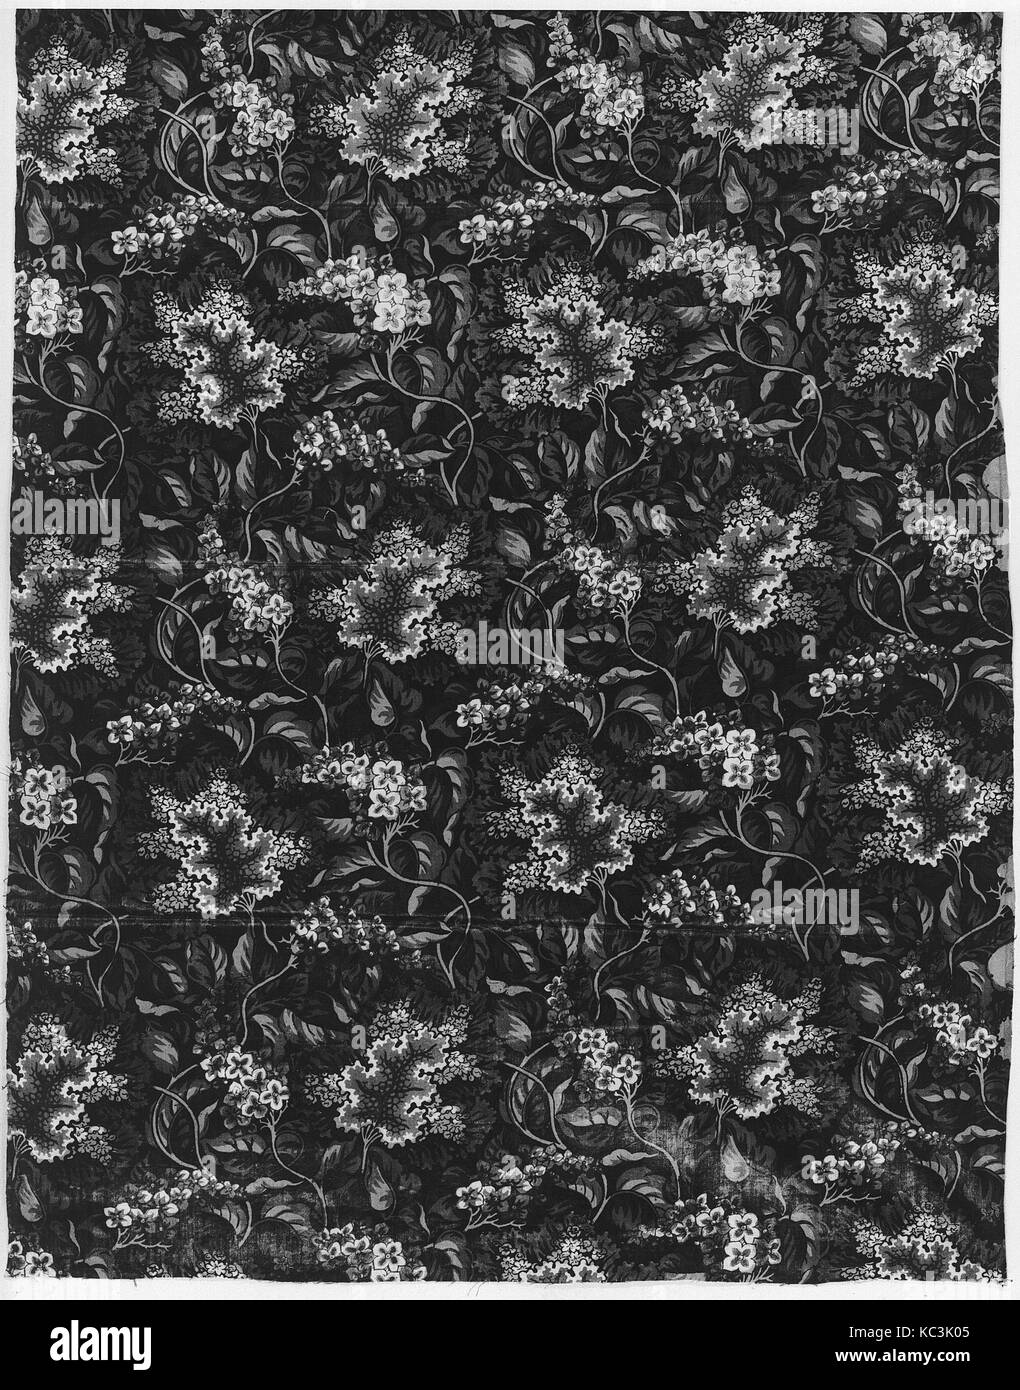 Piece, 1800–1810, British, Cotton, L. 38 1/4 x W. 27 inches, Textiles-Printed - Stock Image